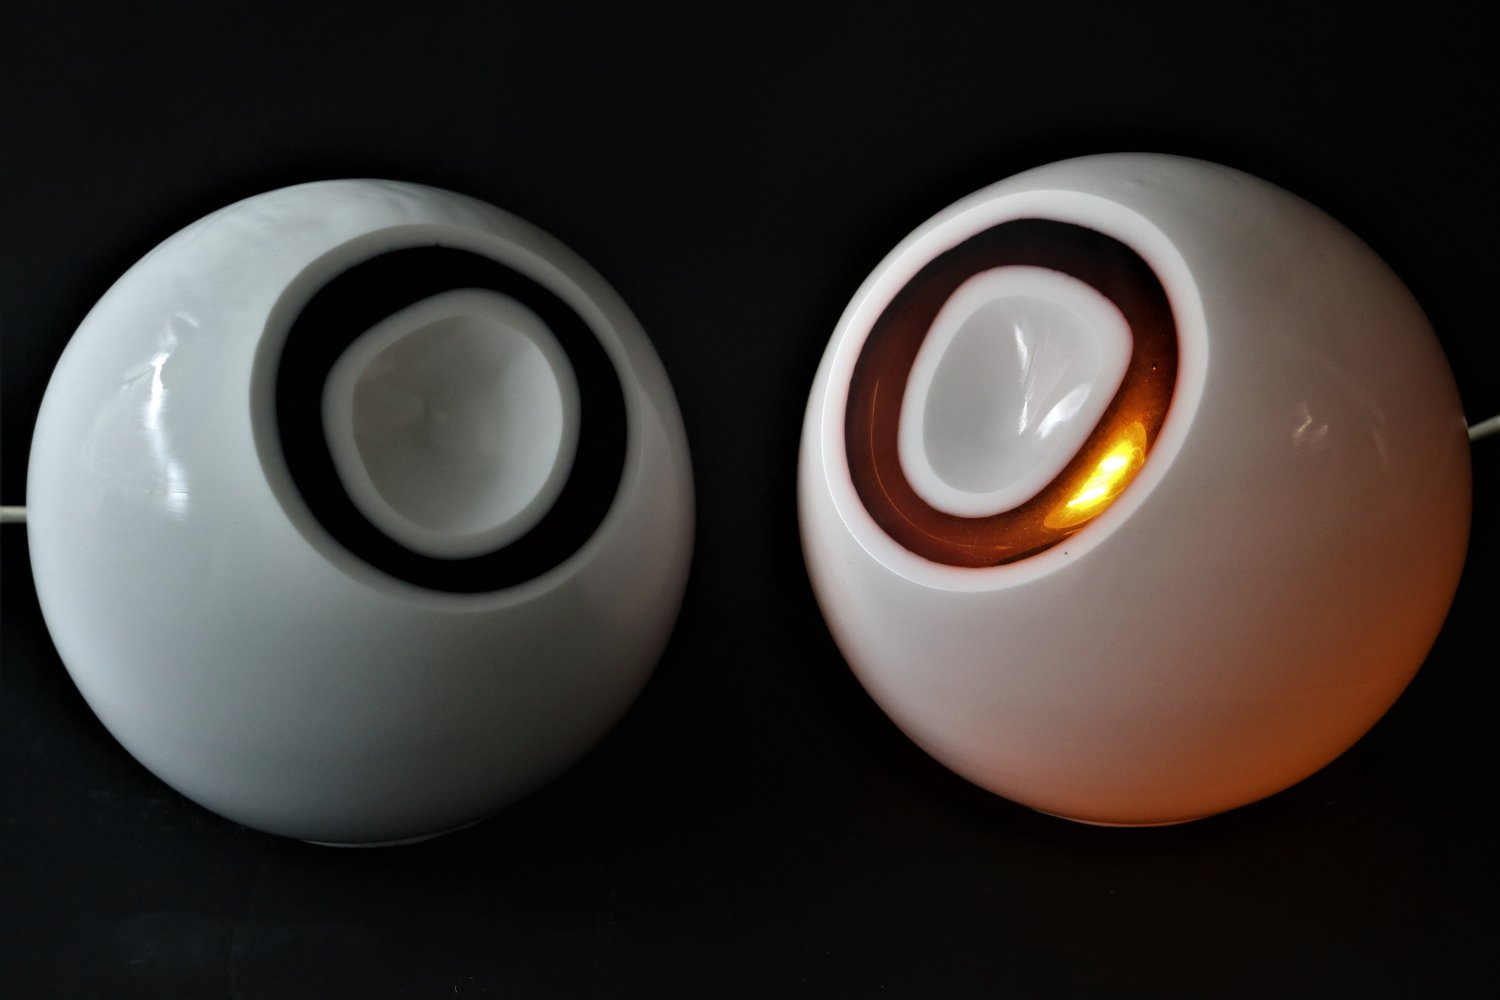 Pair of Vintage white & orange glass table lamps, 1960s